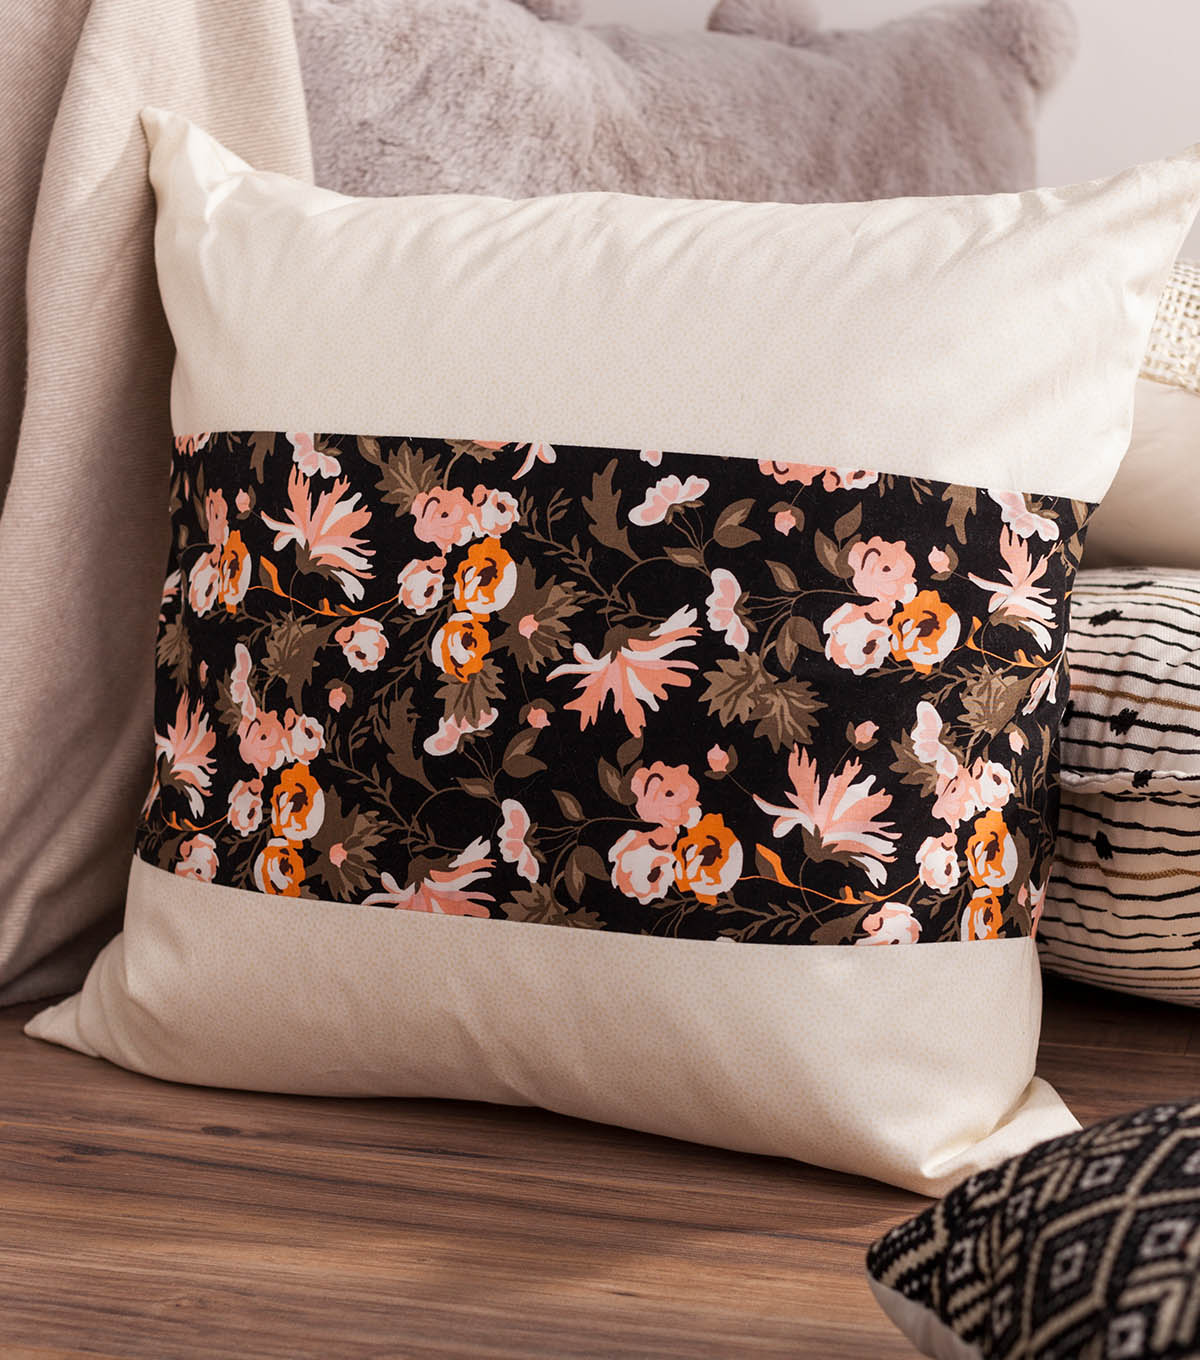 How To Make A Pillow With The Cricut® Maker